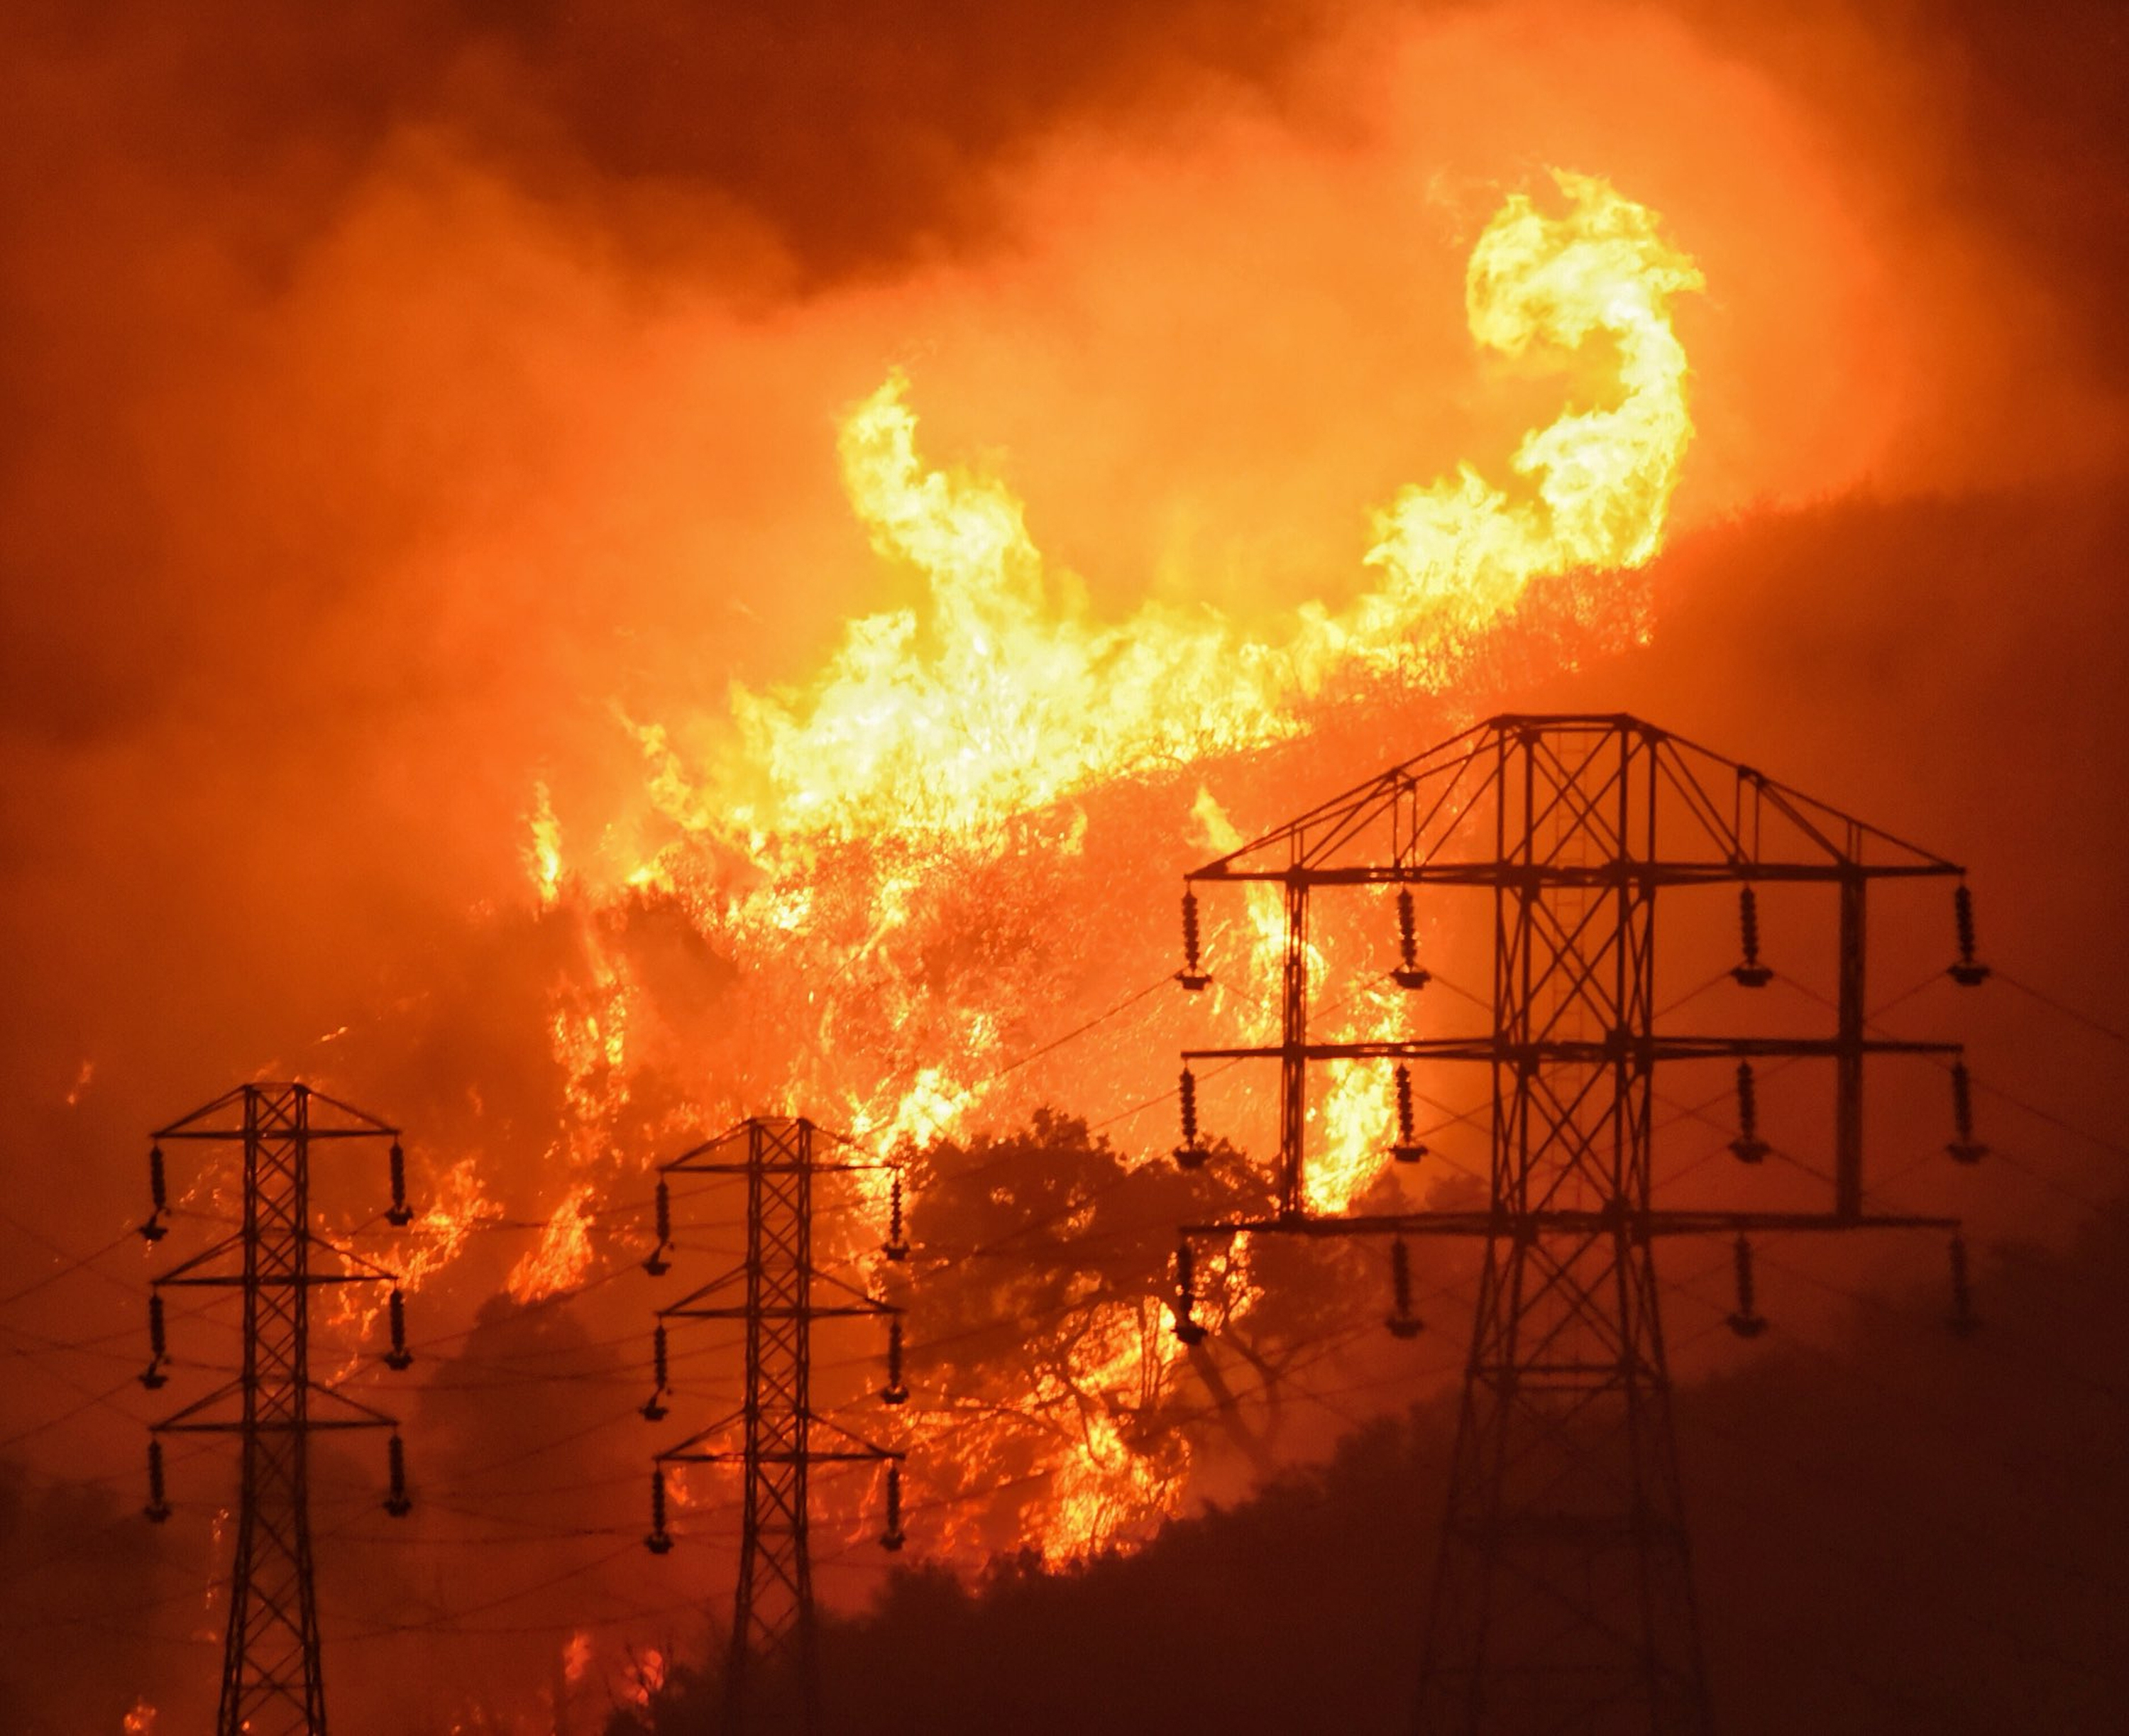 Dec. 16, 2017, file photo provided by the Santa Barbara County Fire Department, flames burn near power lines in Sycamore Canyon near West Mountain Drive in Montecito, Calif.